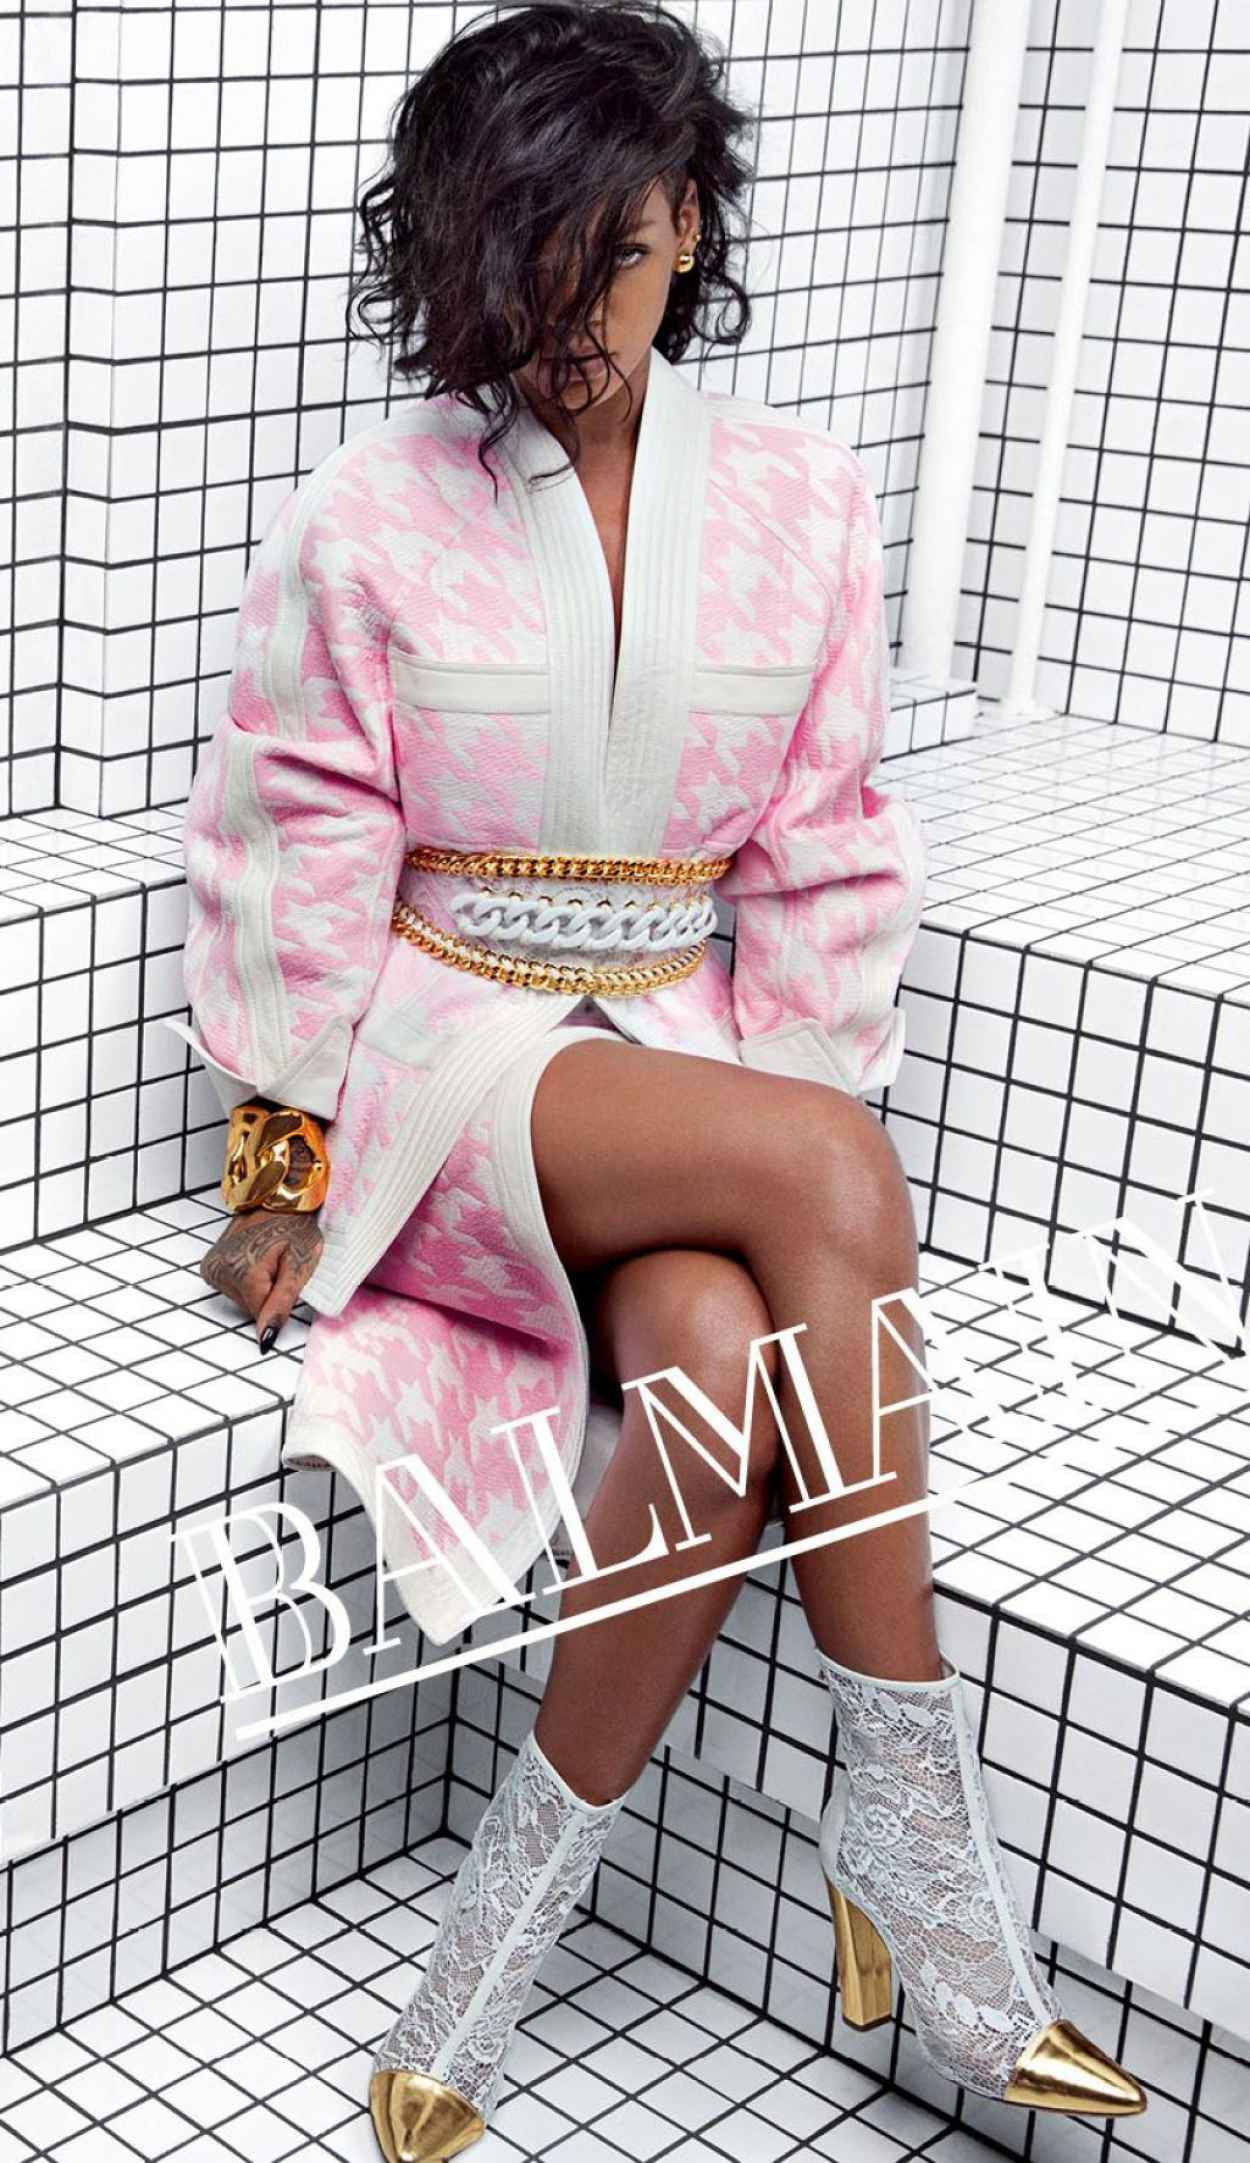 Rihanna Photoshoot by Inez & Vinoodh - Balmain Spring-Summer 2015-2